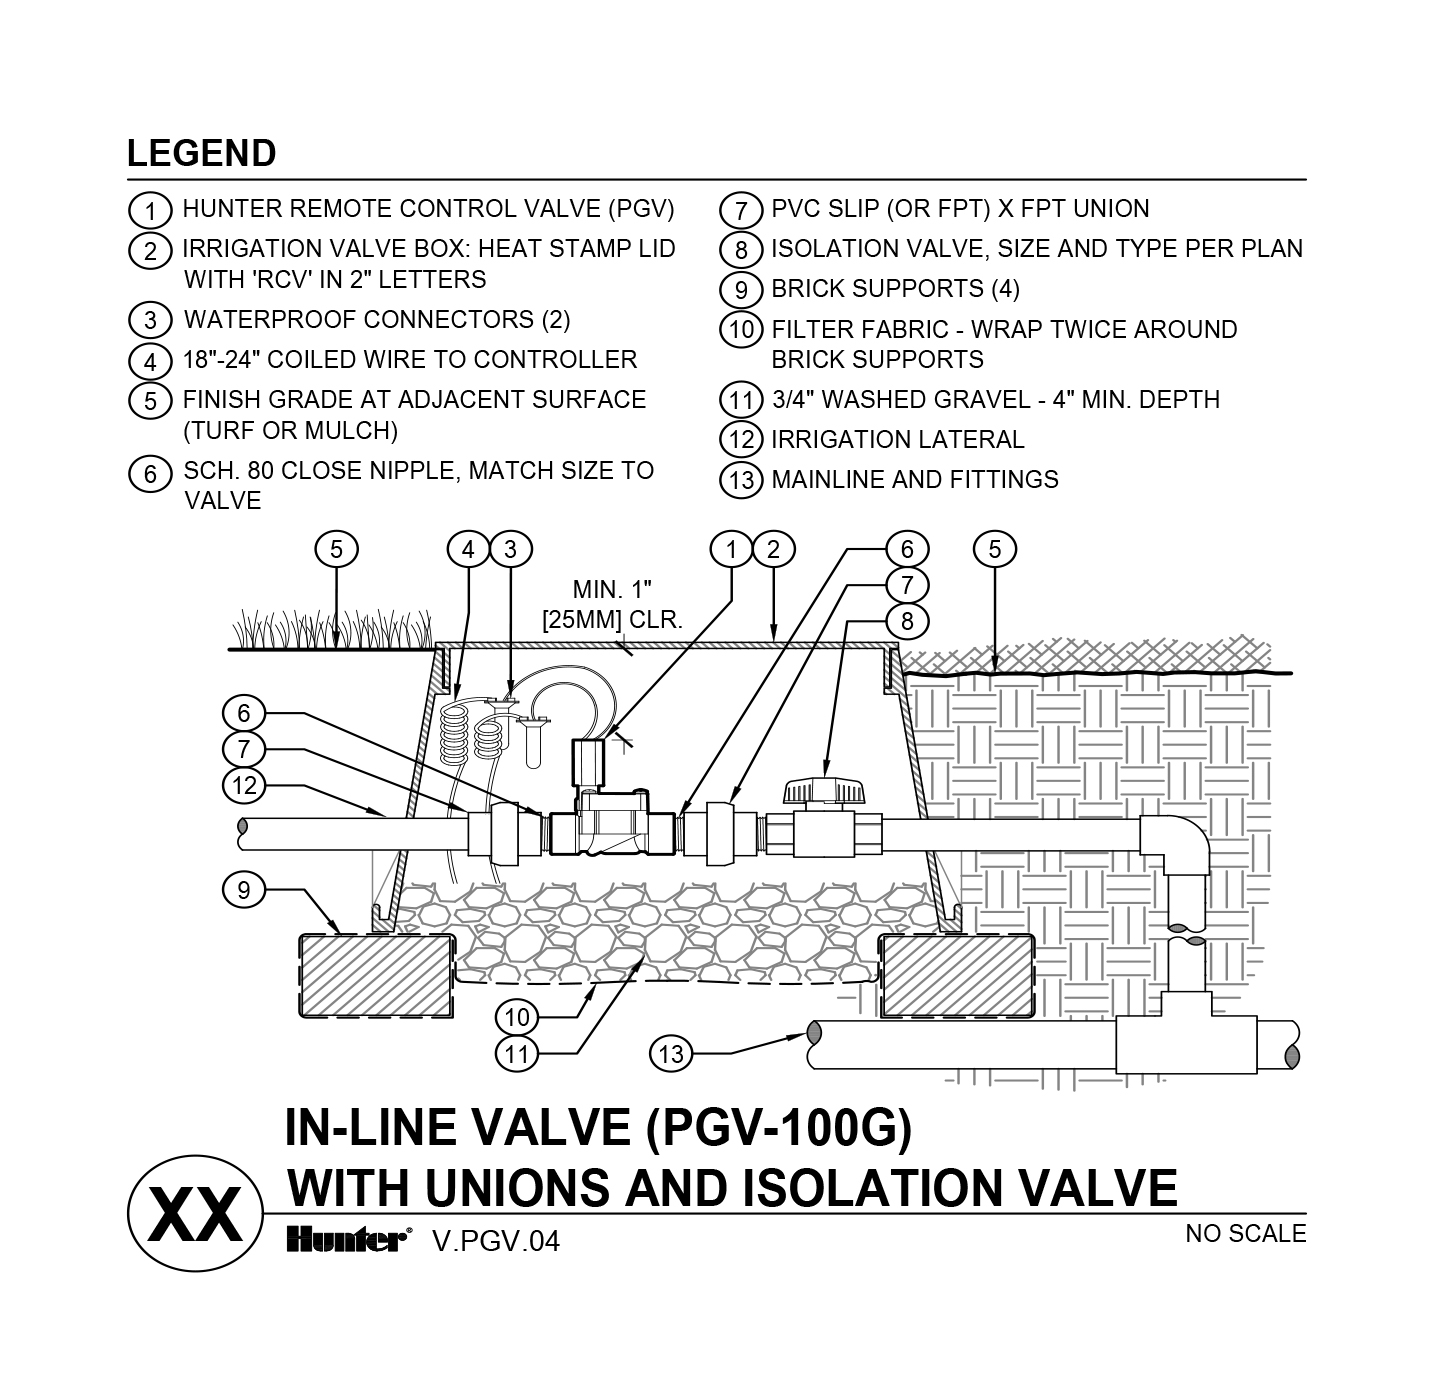 CAD - PGV-100G with unions and shutoff valve